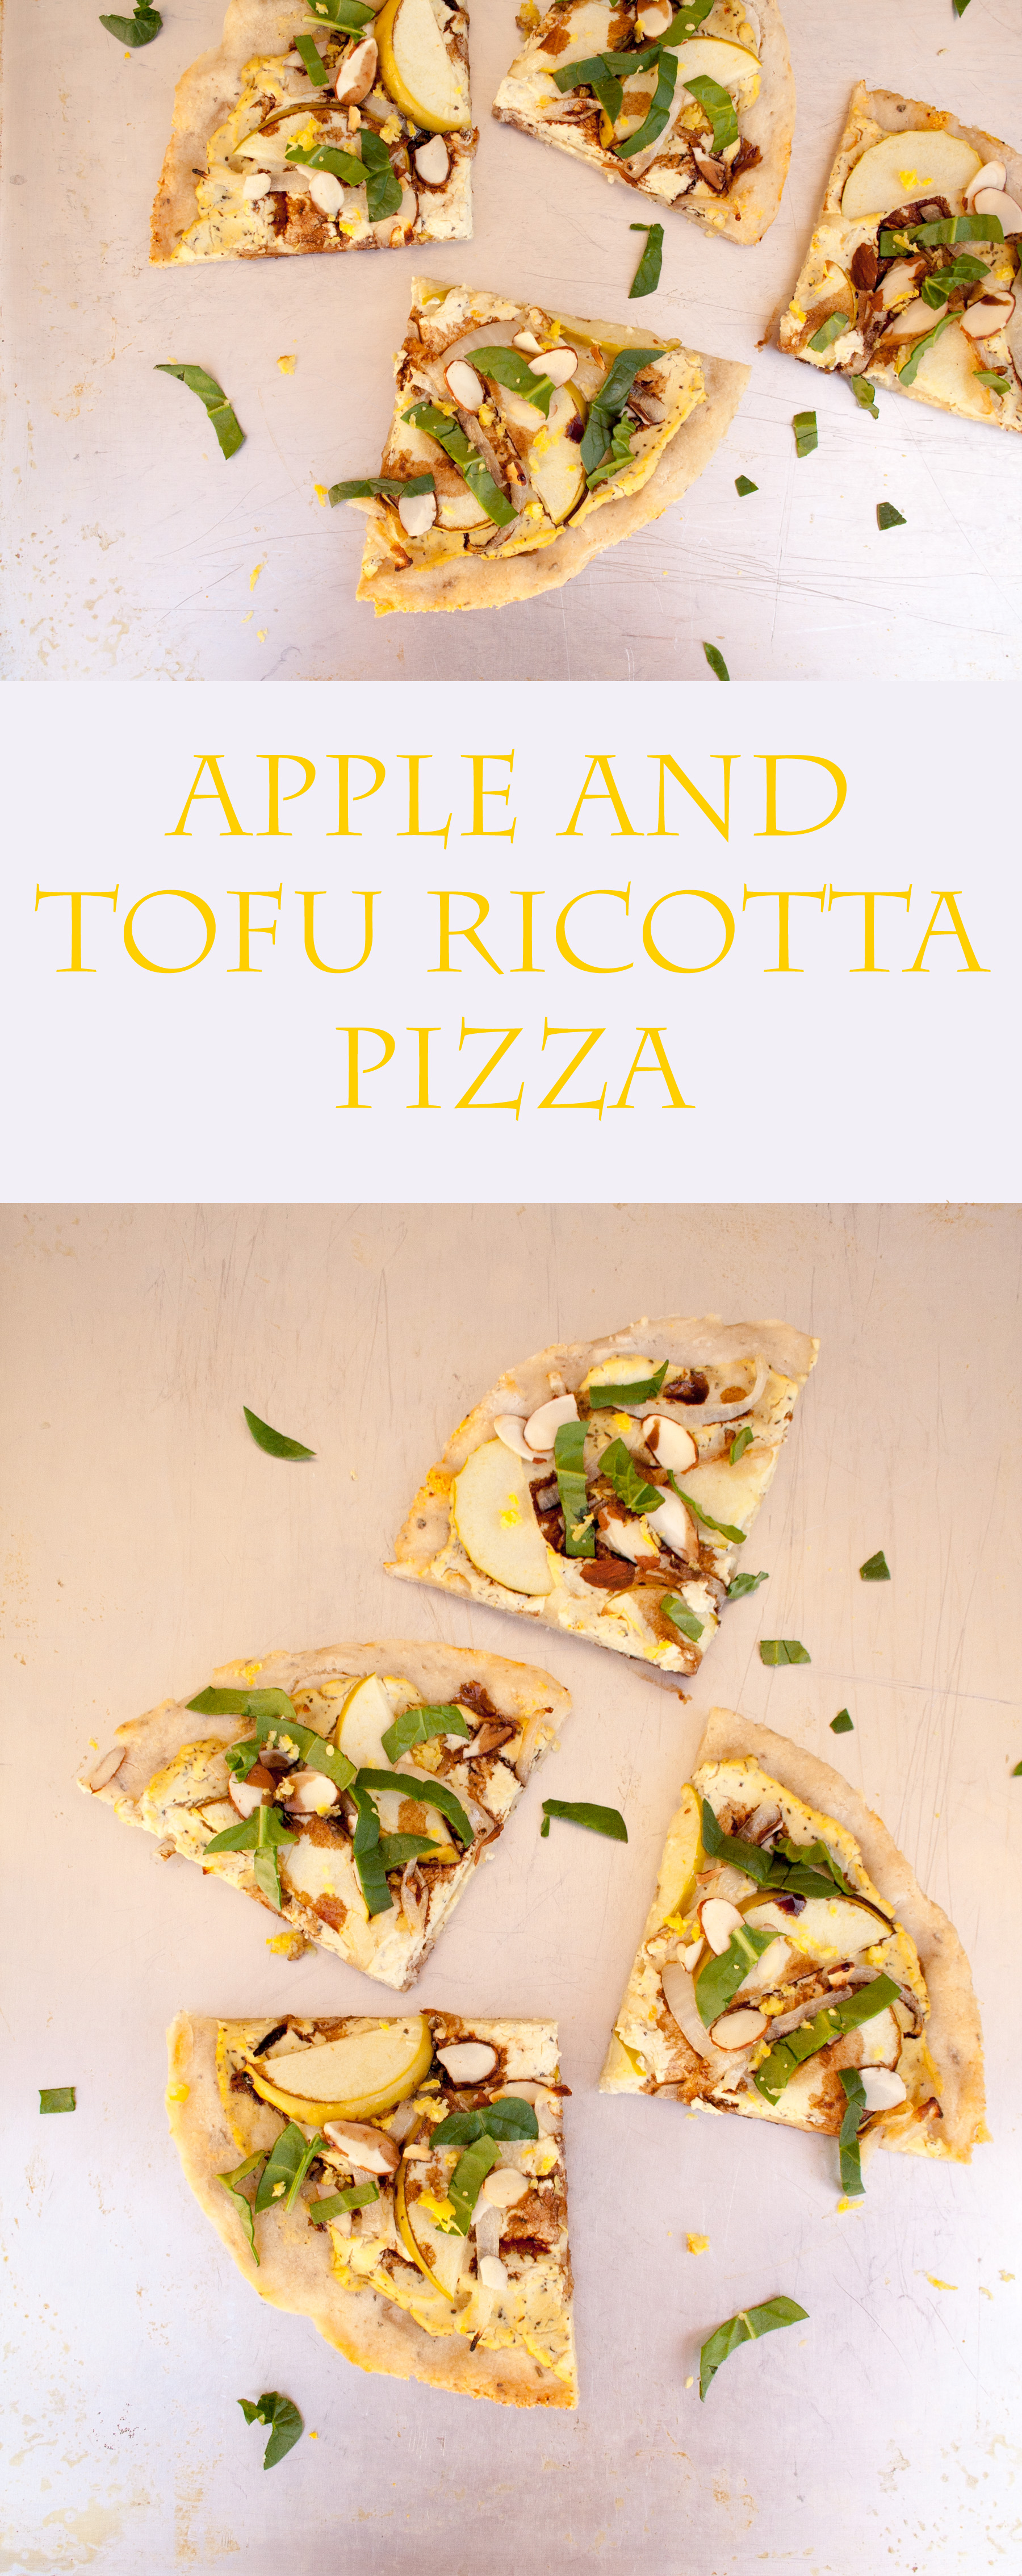 Apple and Tofu Ricotta Pizza collage photo with text.